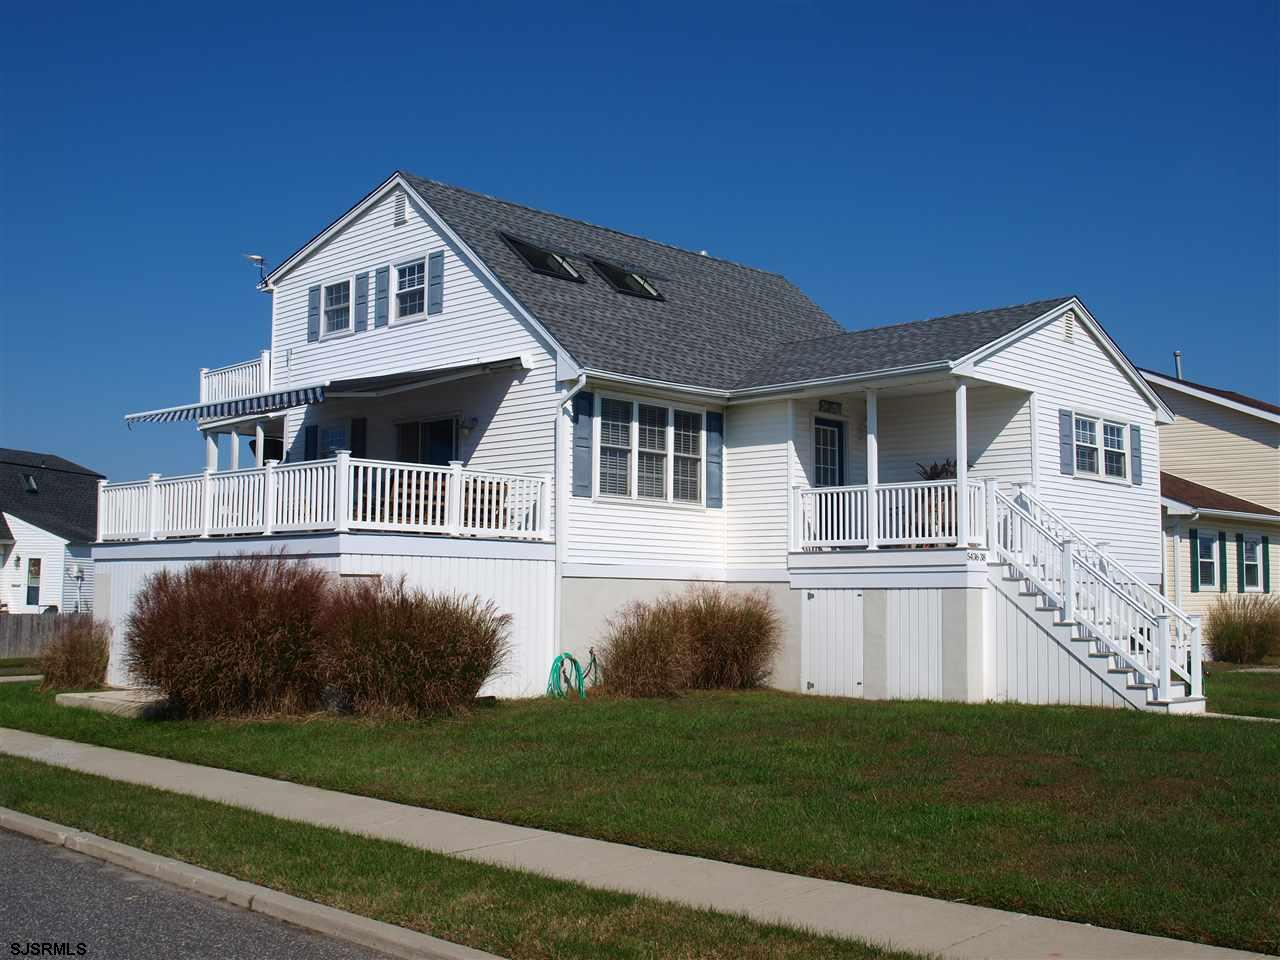 5436 Bay Avenue #5436 BAY Avenue, Ocean City, NJ 08226